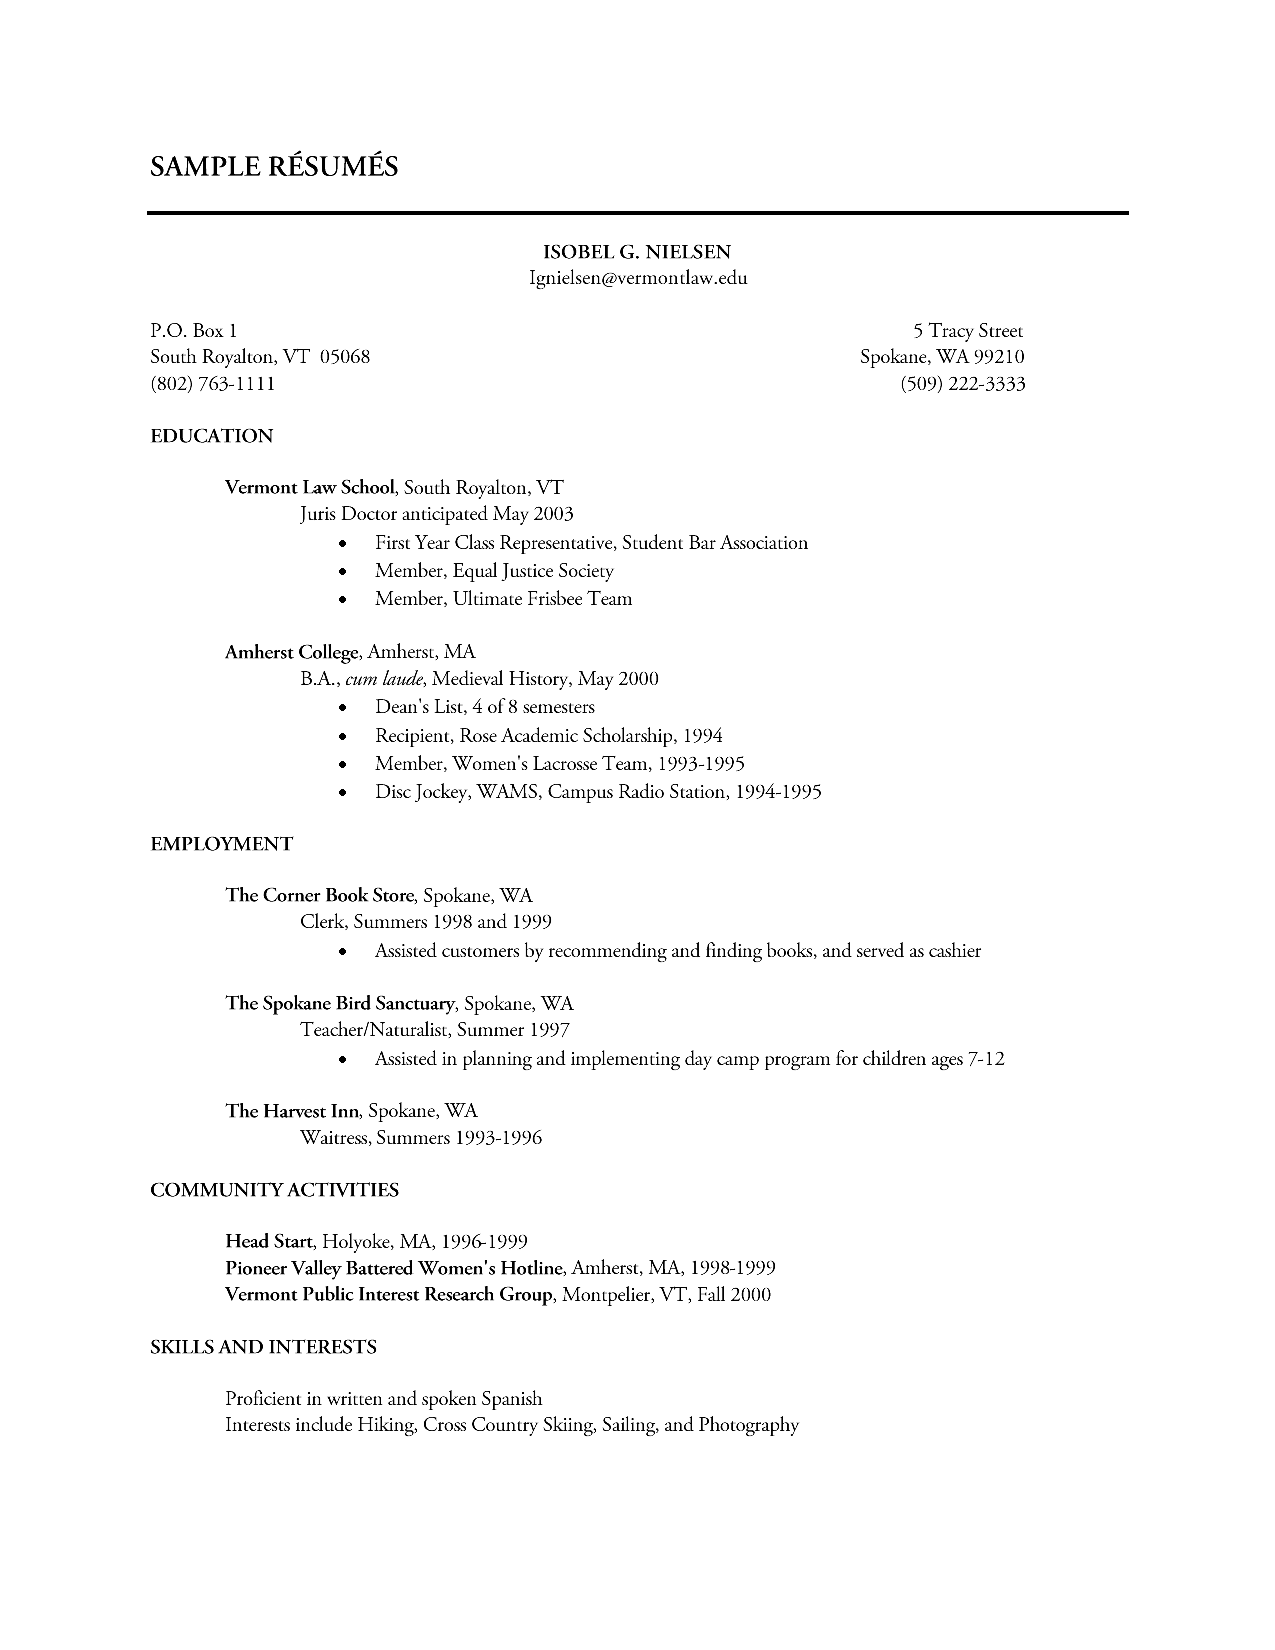 Sample Resume Showing Volunteer Work | Resume Sample Volunteer Ngo